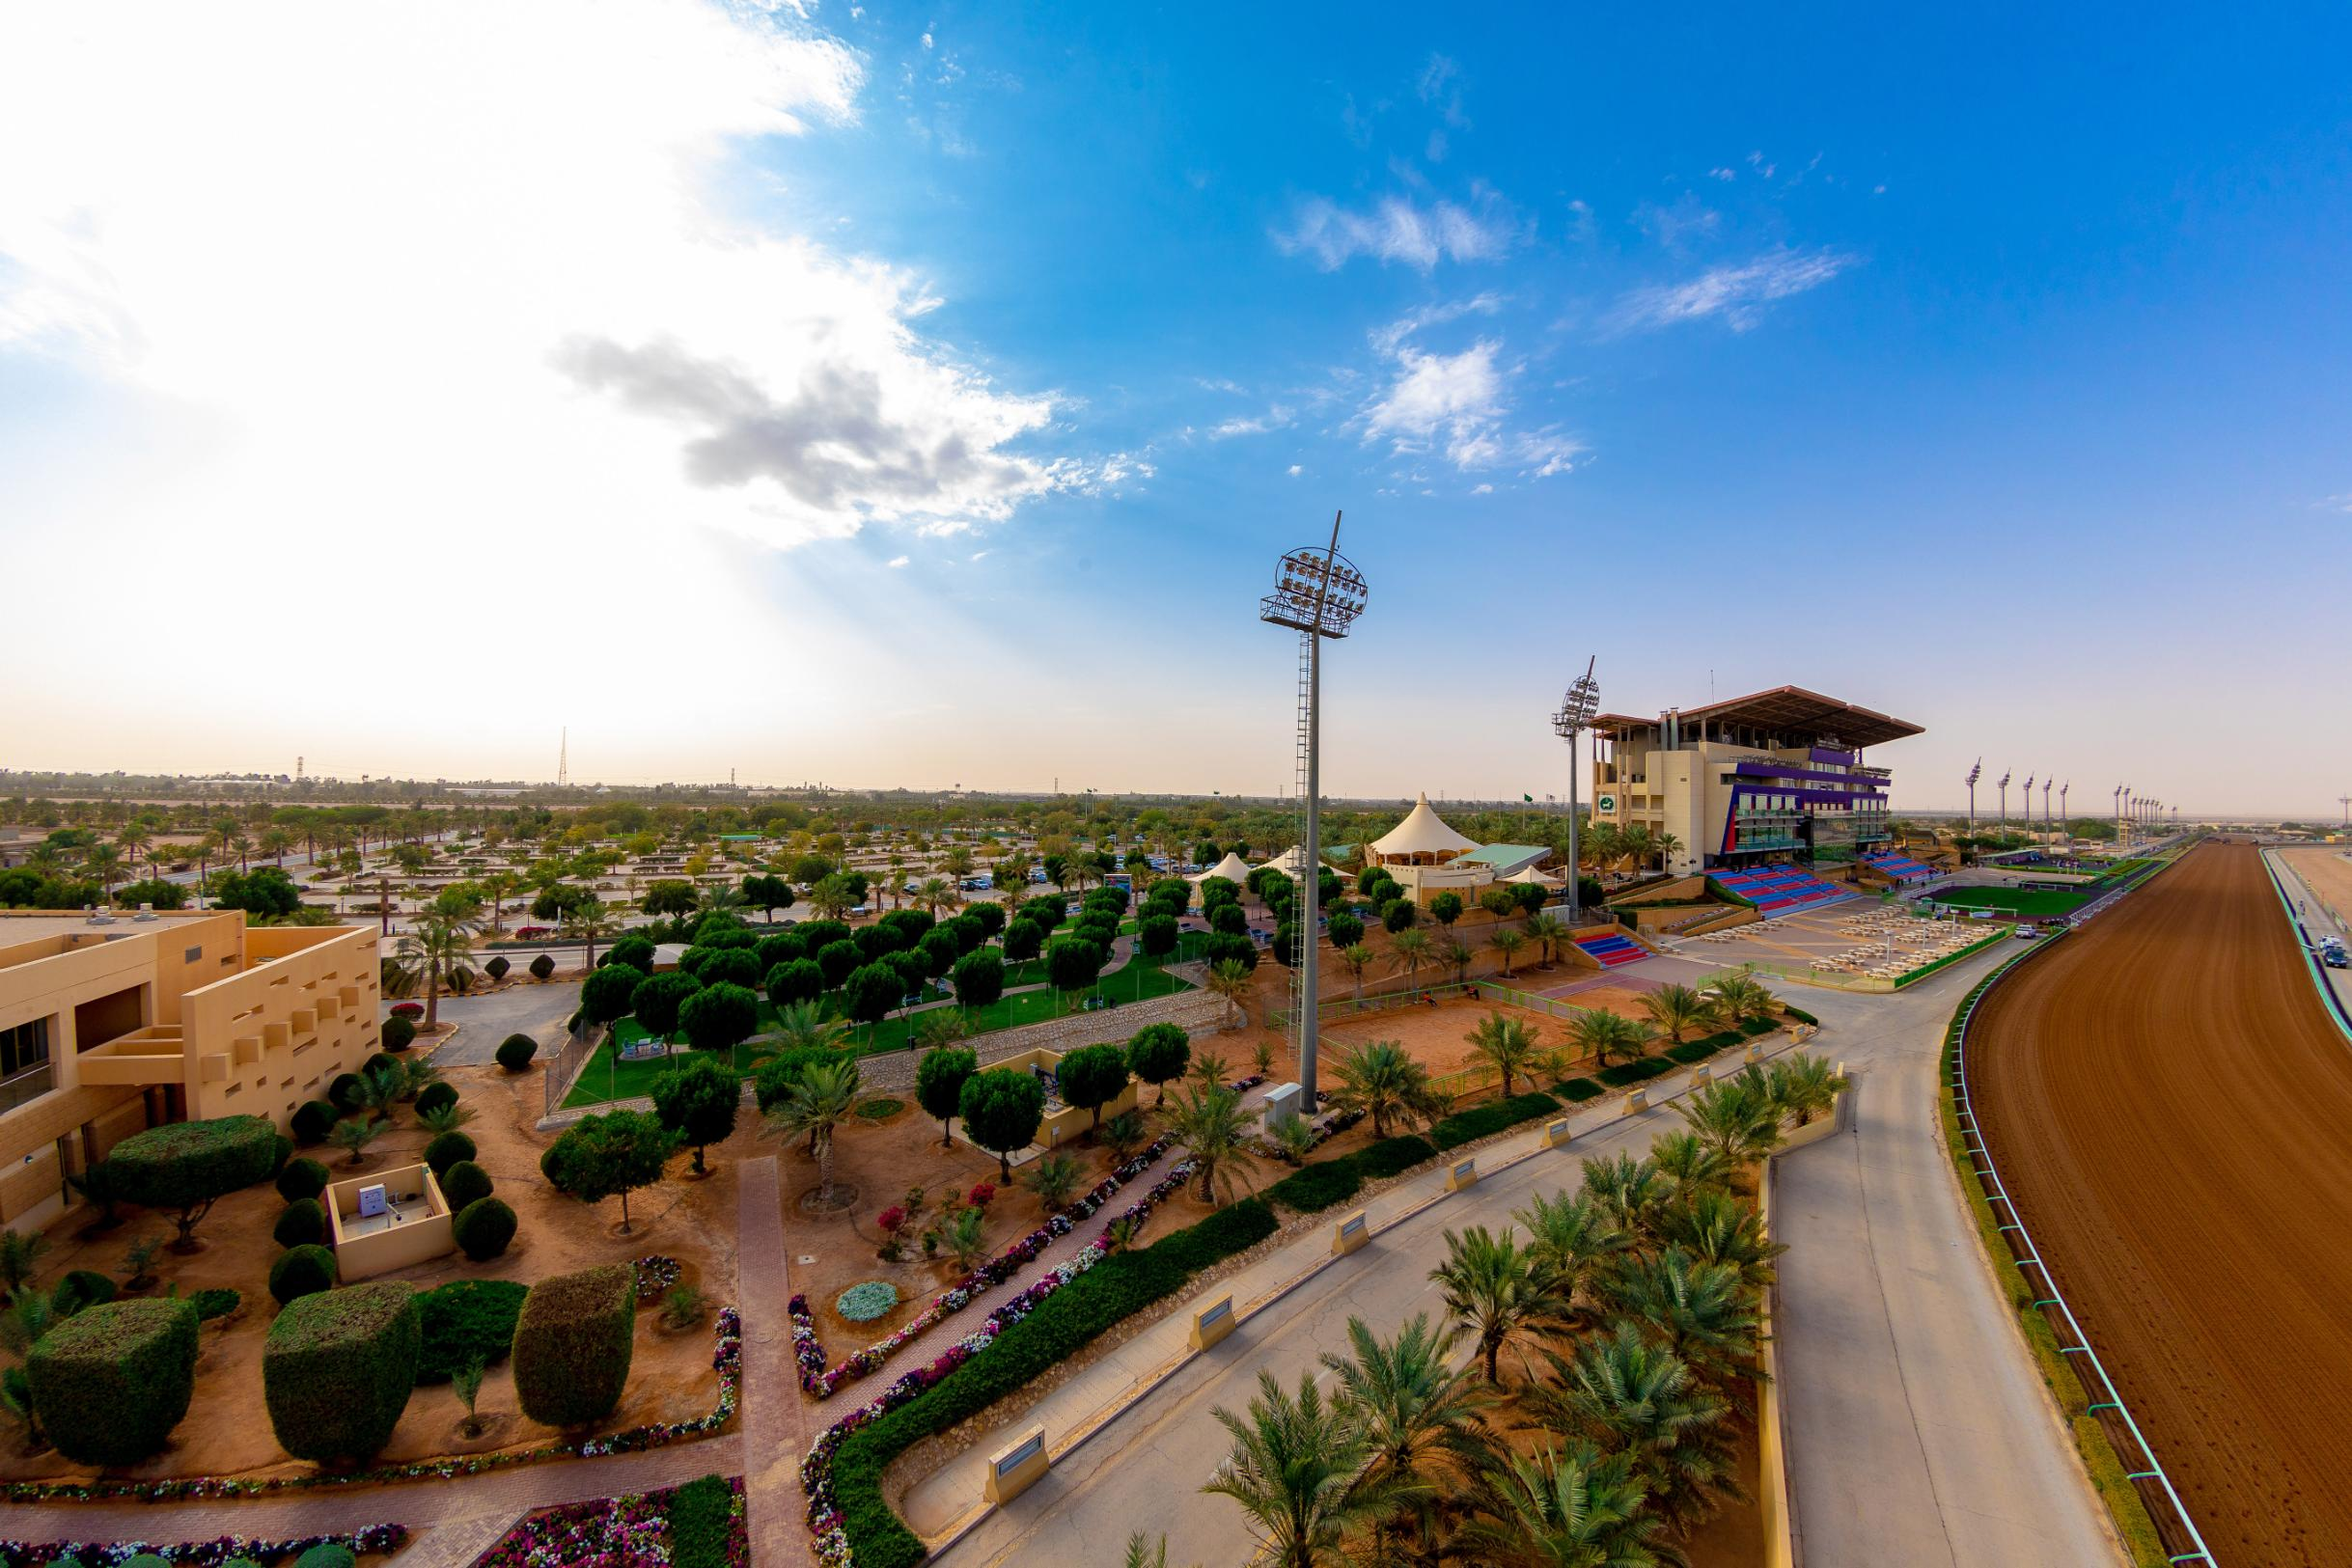 The $20 million Saudi Cup to become world's richest horse race